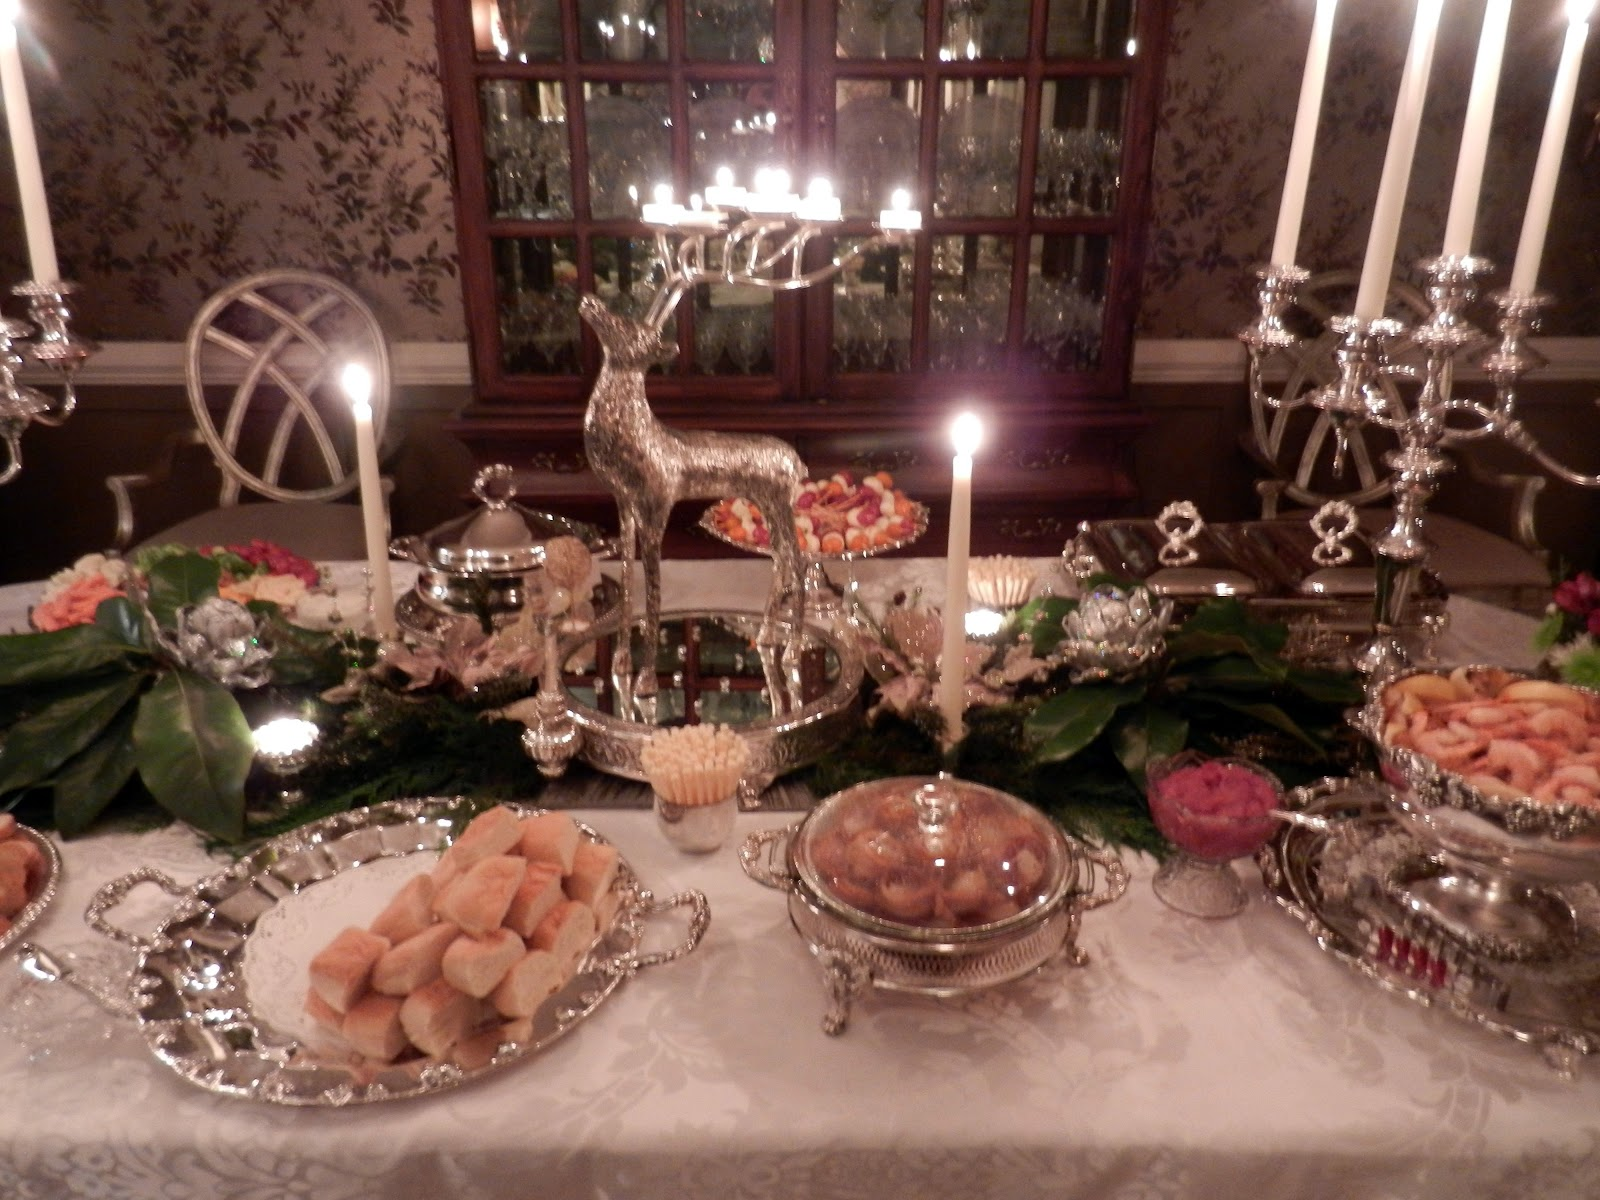 A Perfect Setting: December 2012